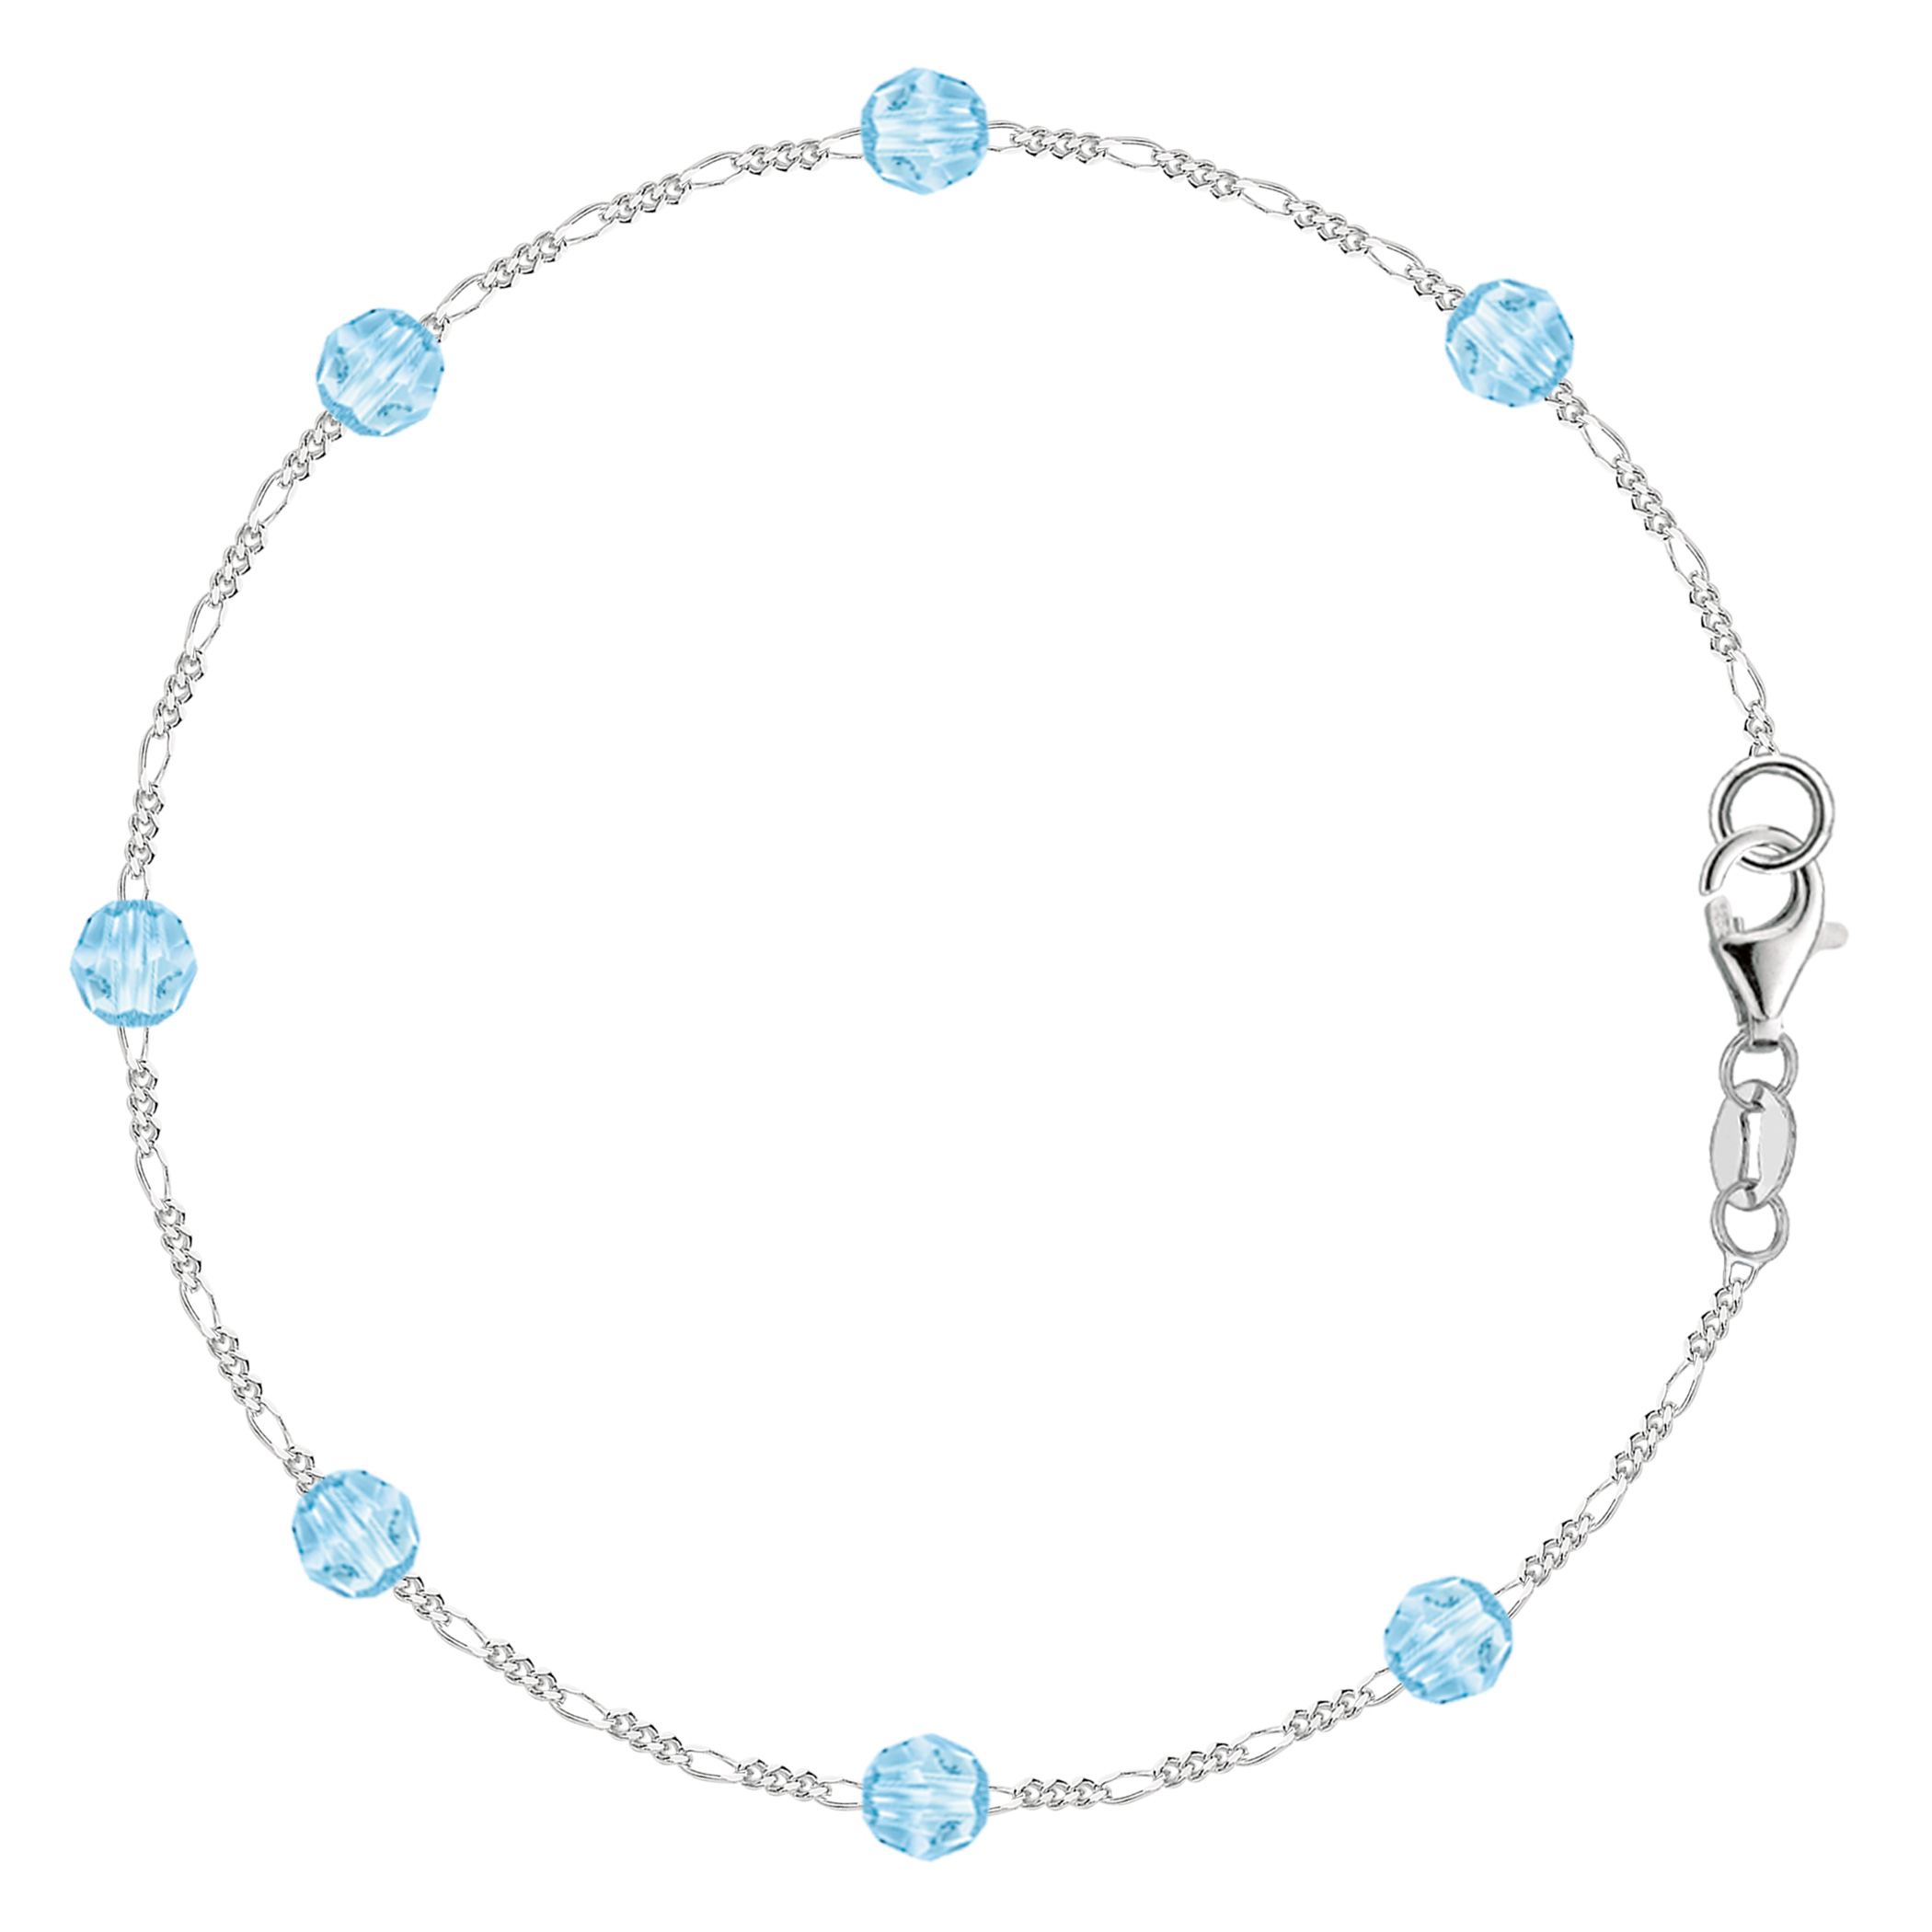 Baby Blue Synthetic Resin Bead Chain Anklet In Sterling Silver, 10″